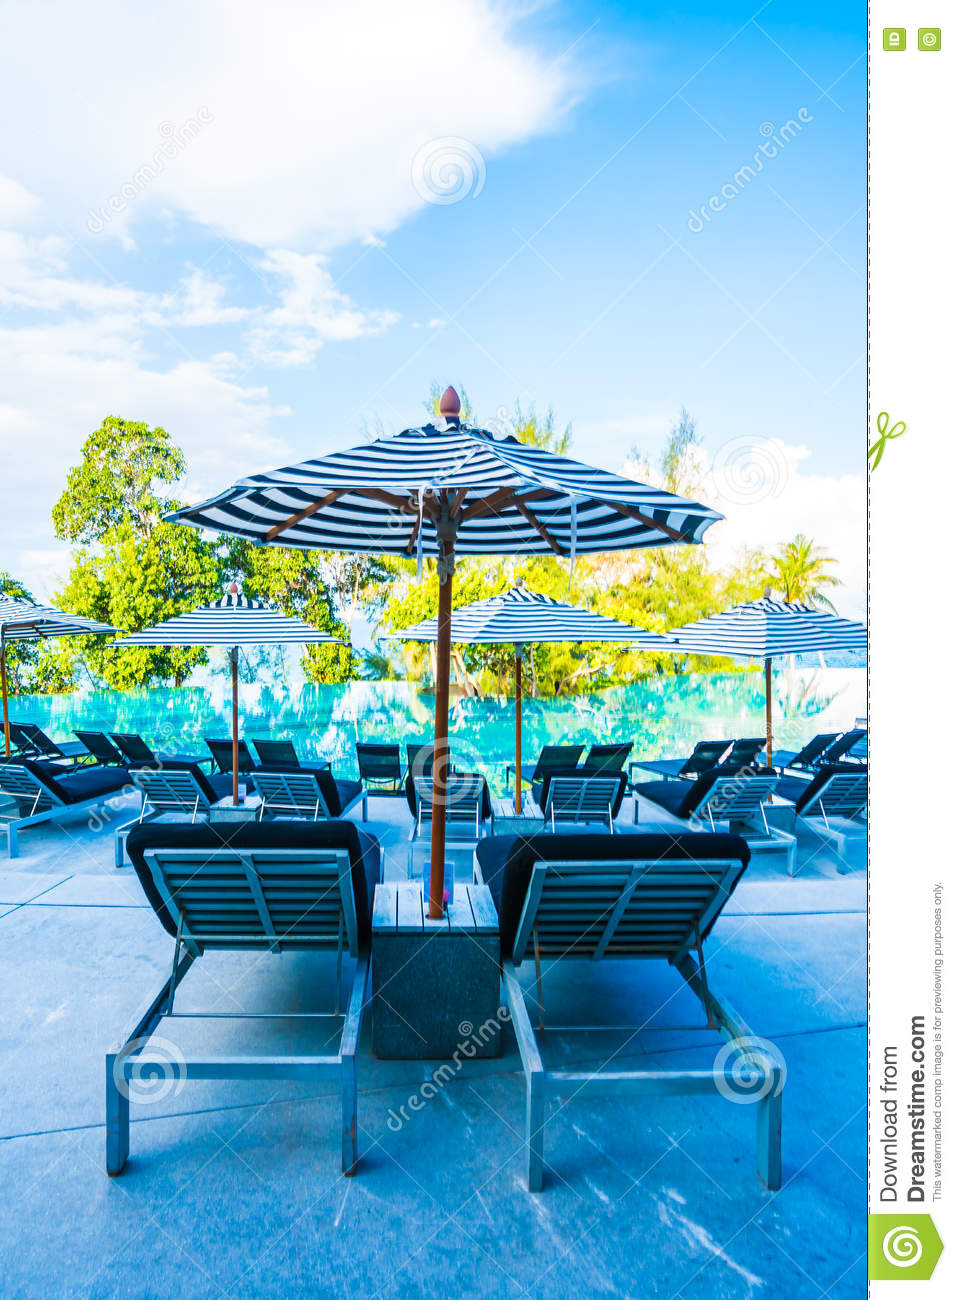 Outdoor Swimming Pool Stock Photo. Image Of Rest, Water